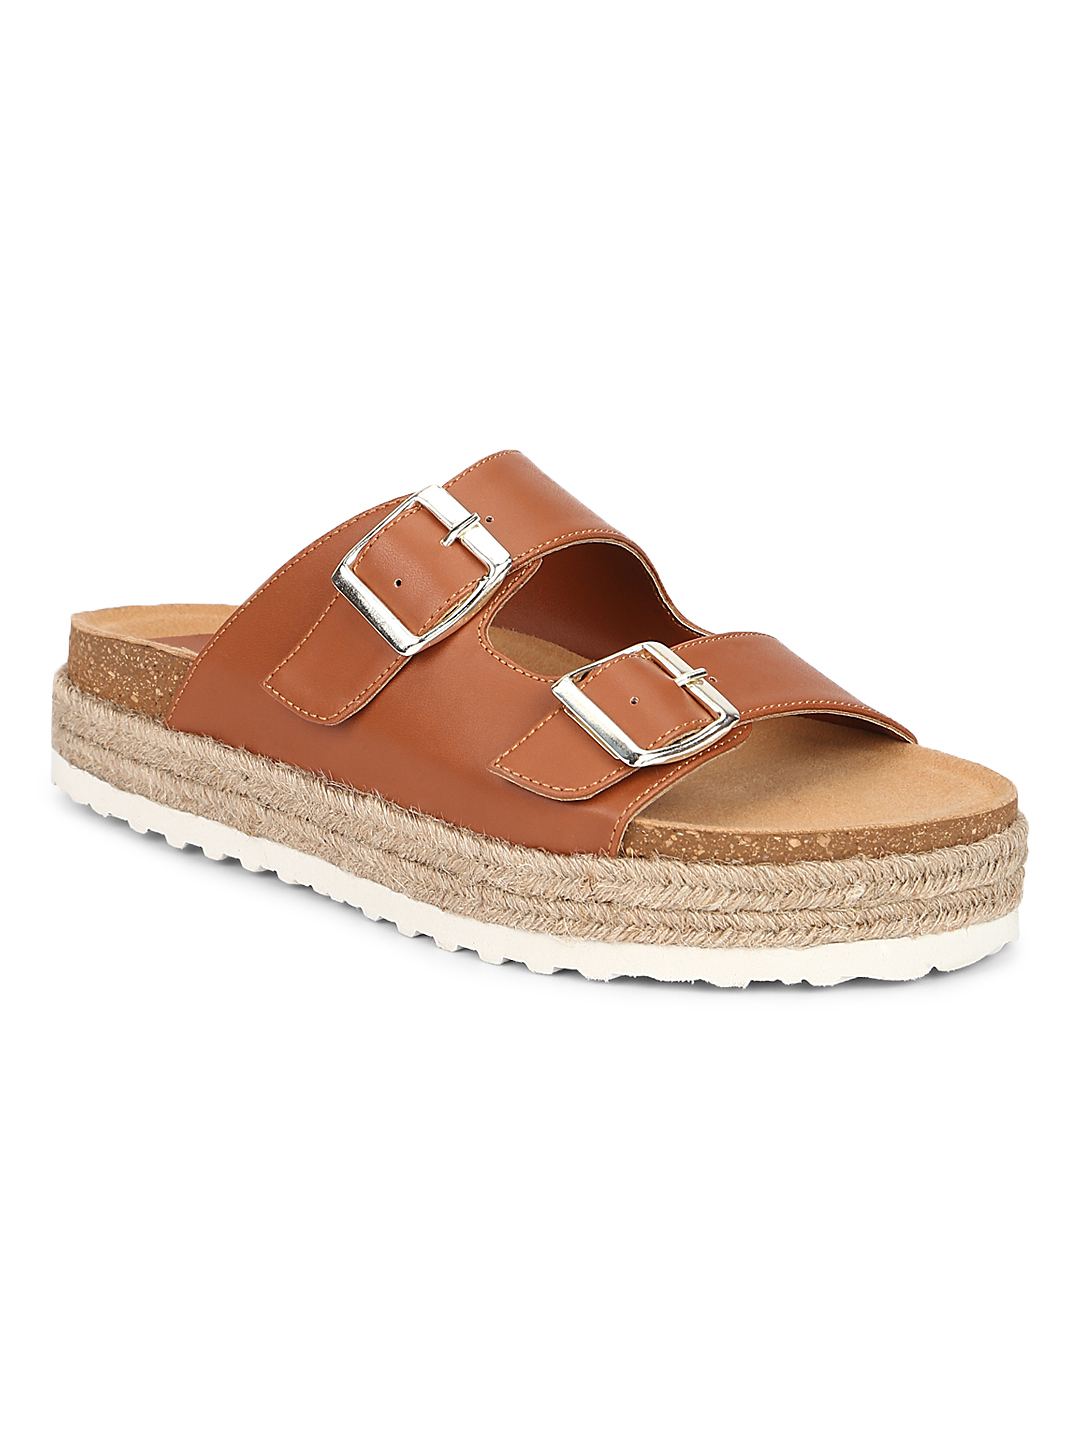 Truffle Collection   Truffle Collection Tan PU Side Buckle Wedges Espadrilles Sandals